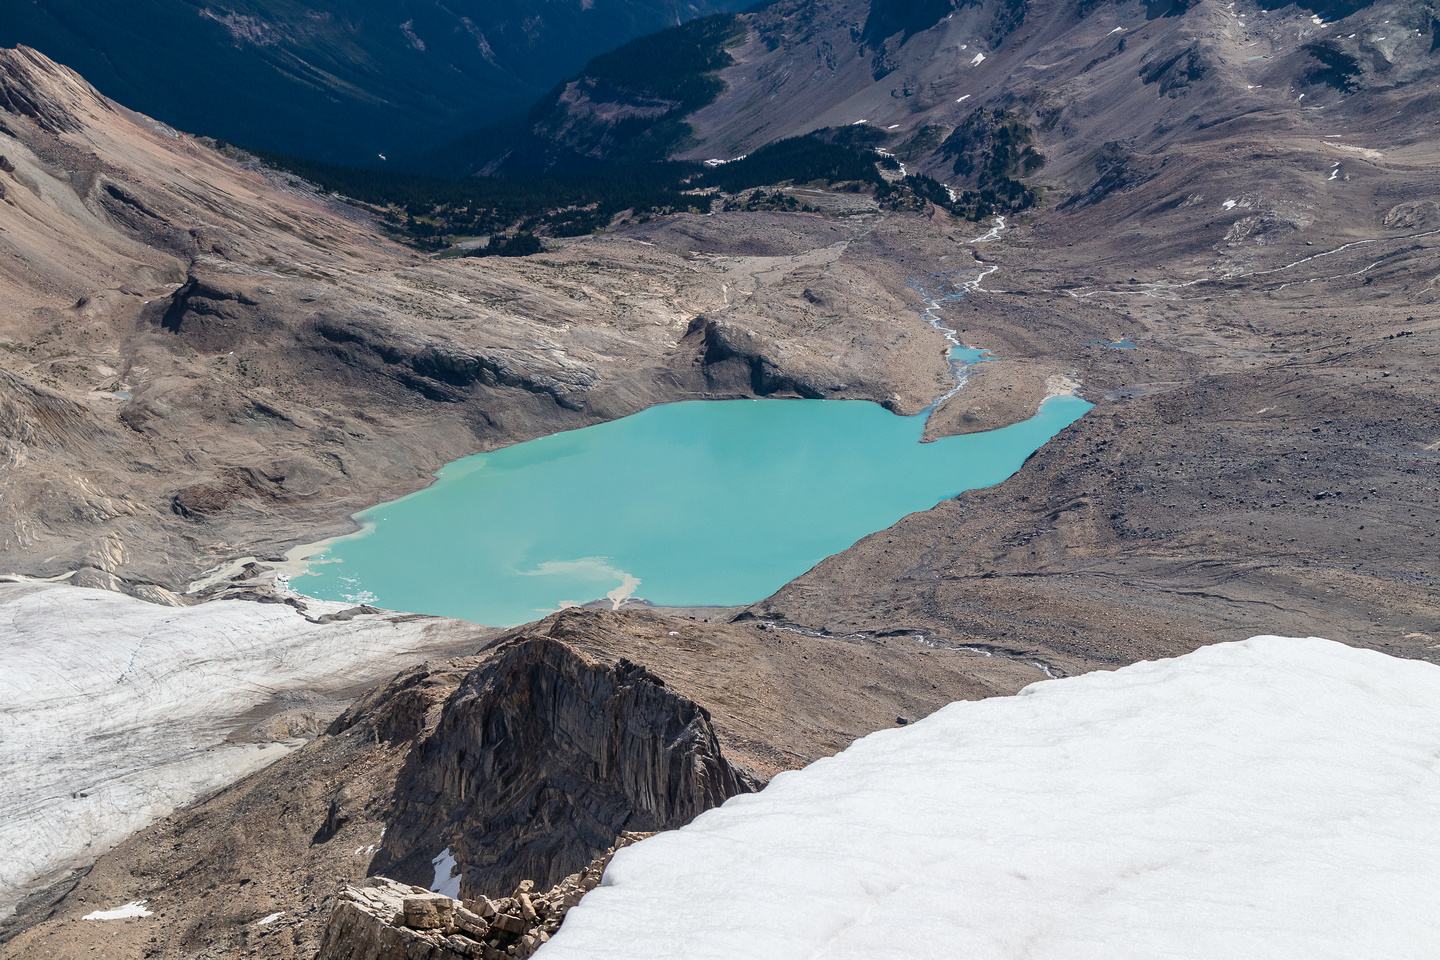 The Wapta Icefield melts into the stunning lower tarn.